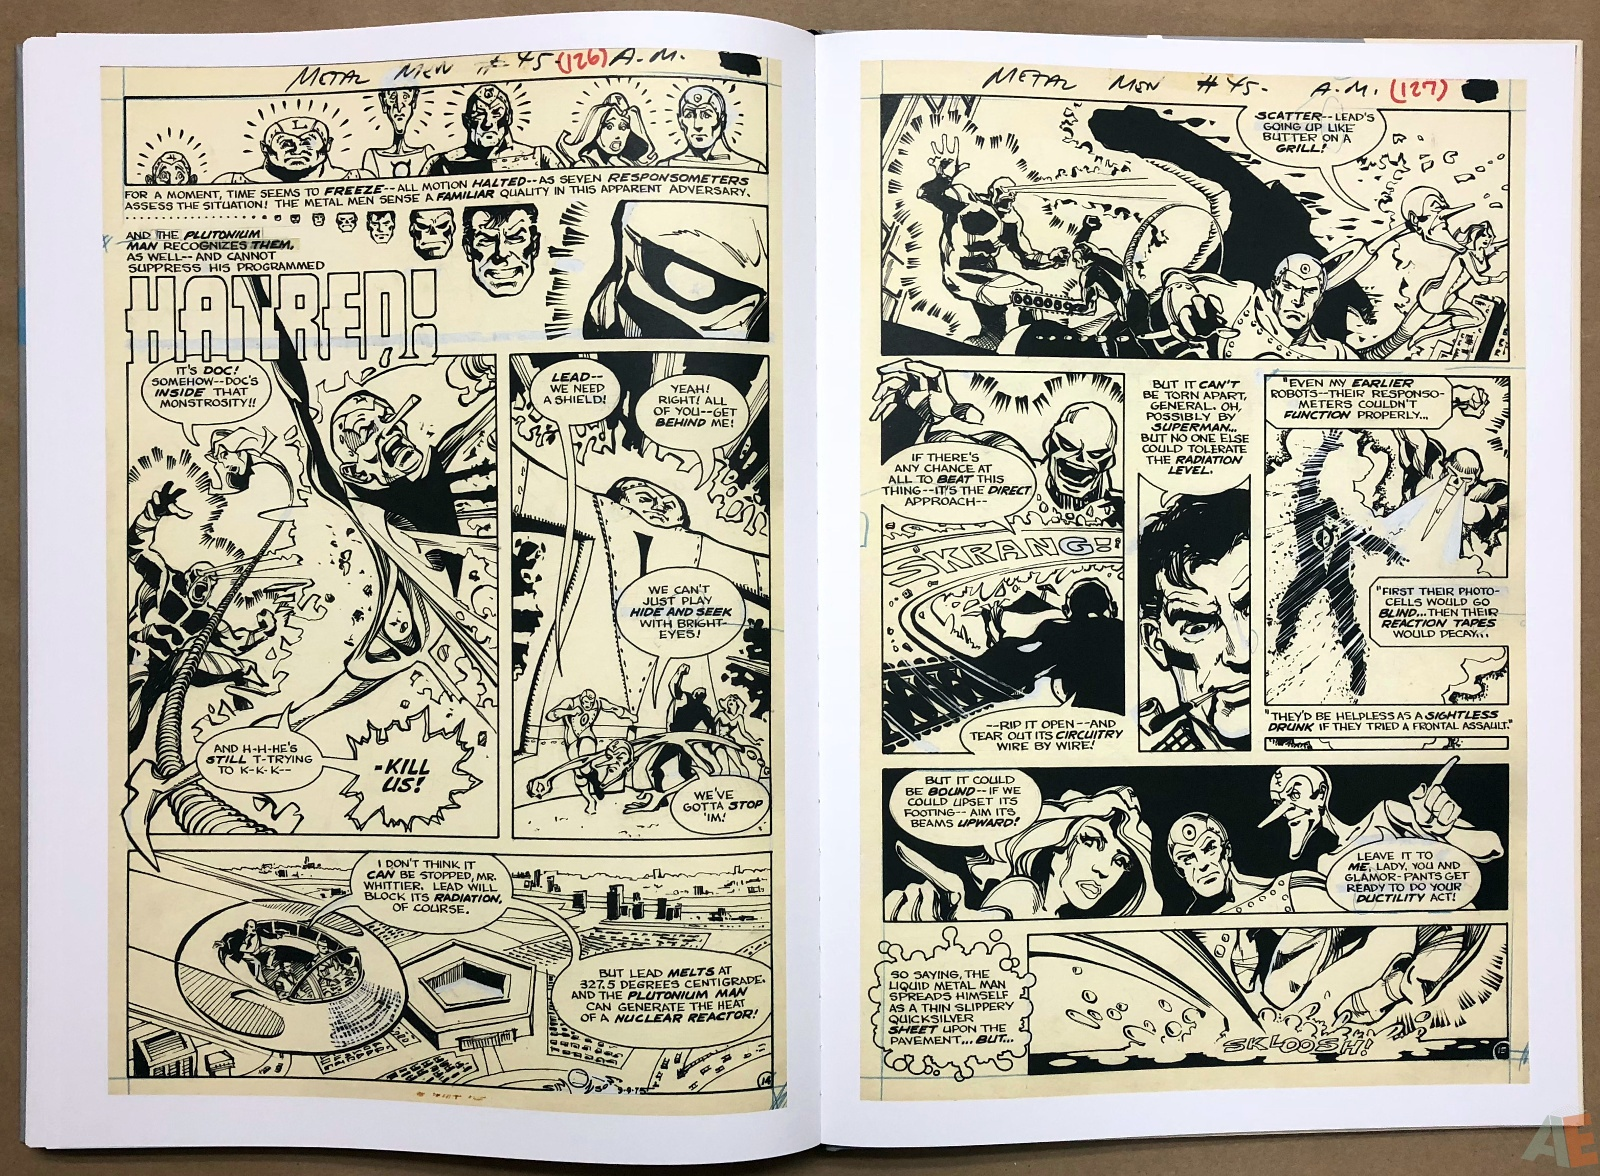 Walter Simonson Manhunter and Other Stories Artist's Edition 38